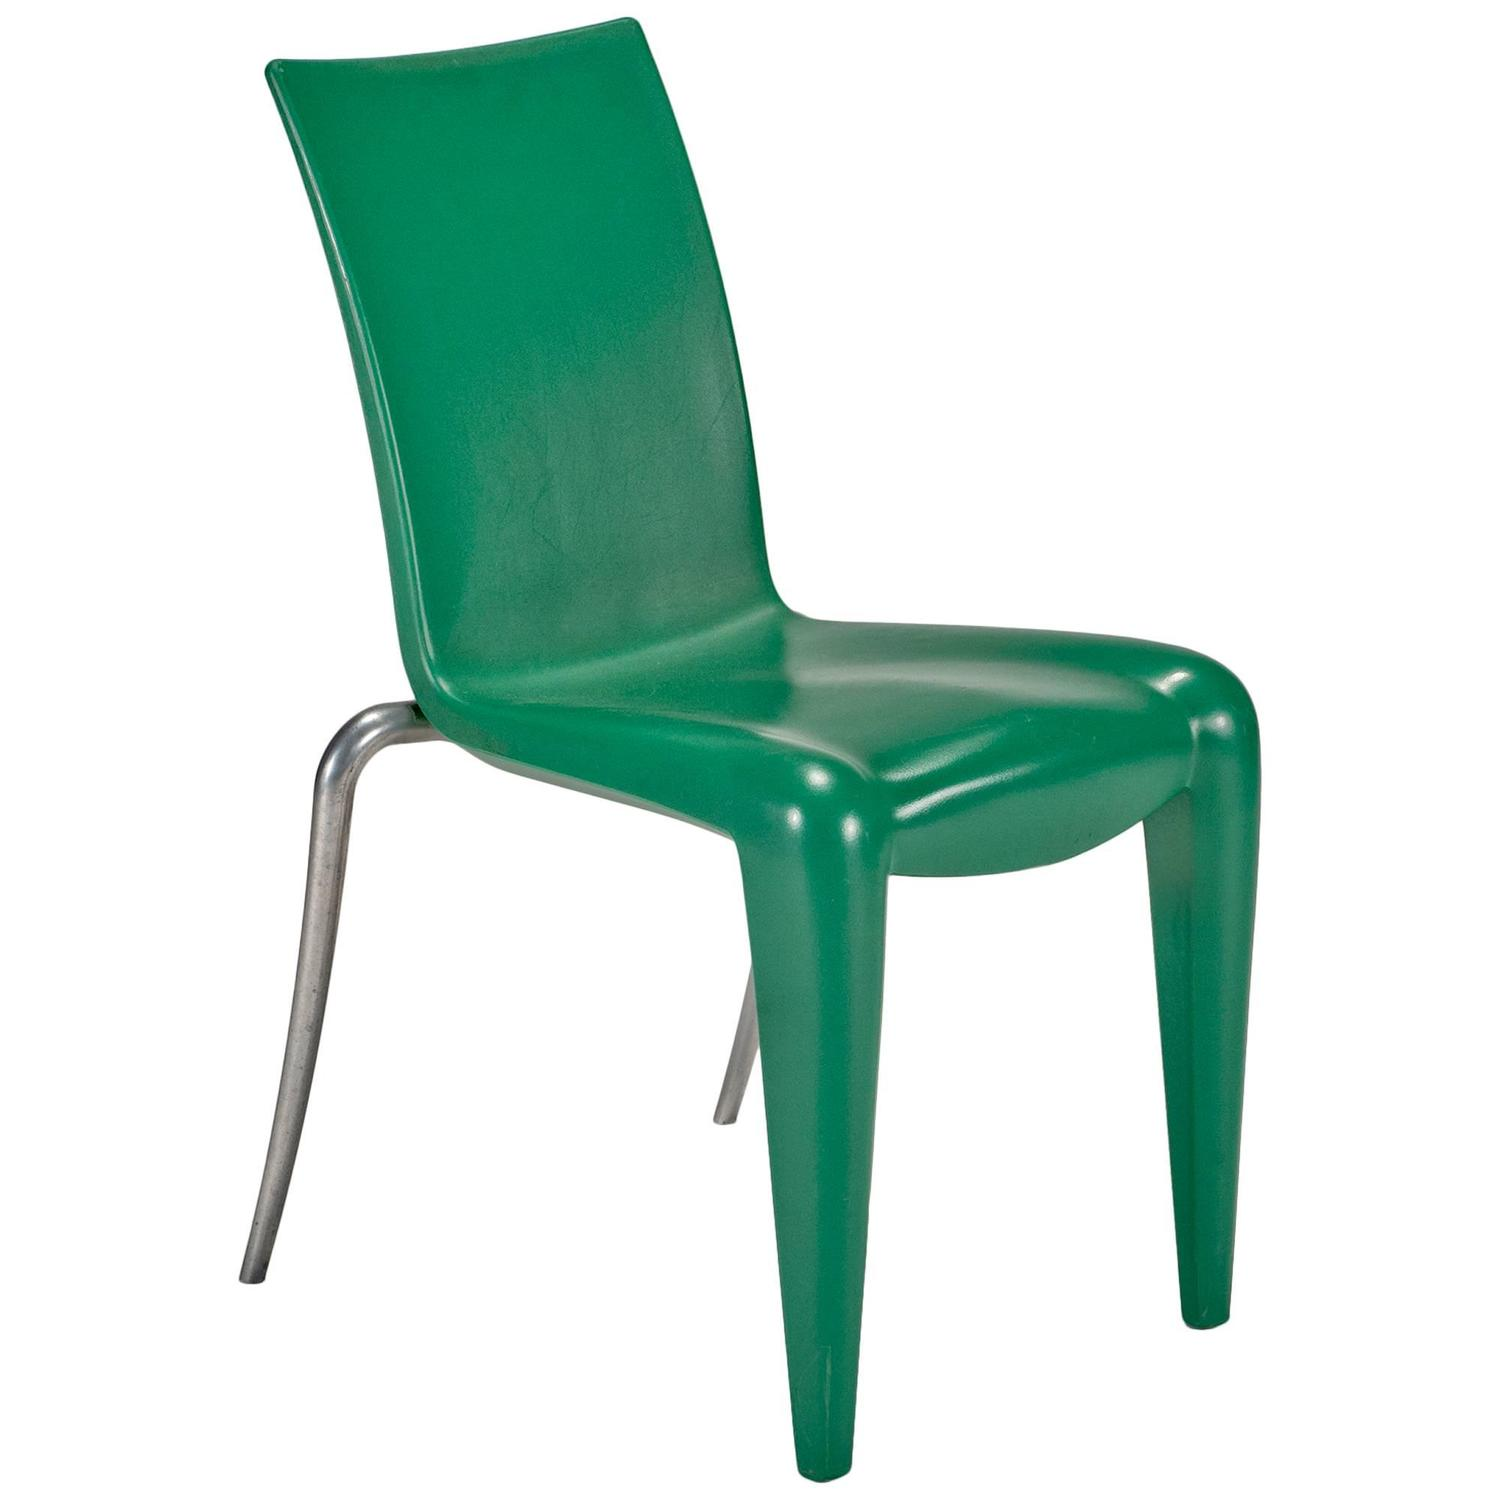 Louis 20 Side Chair Prototype in Green by Philippe Starck for